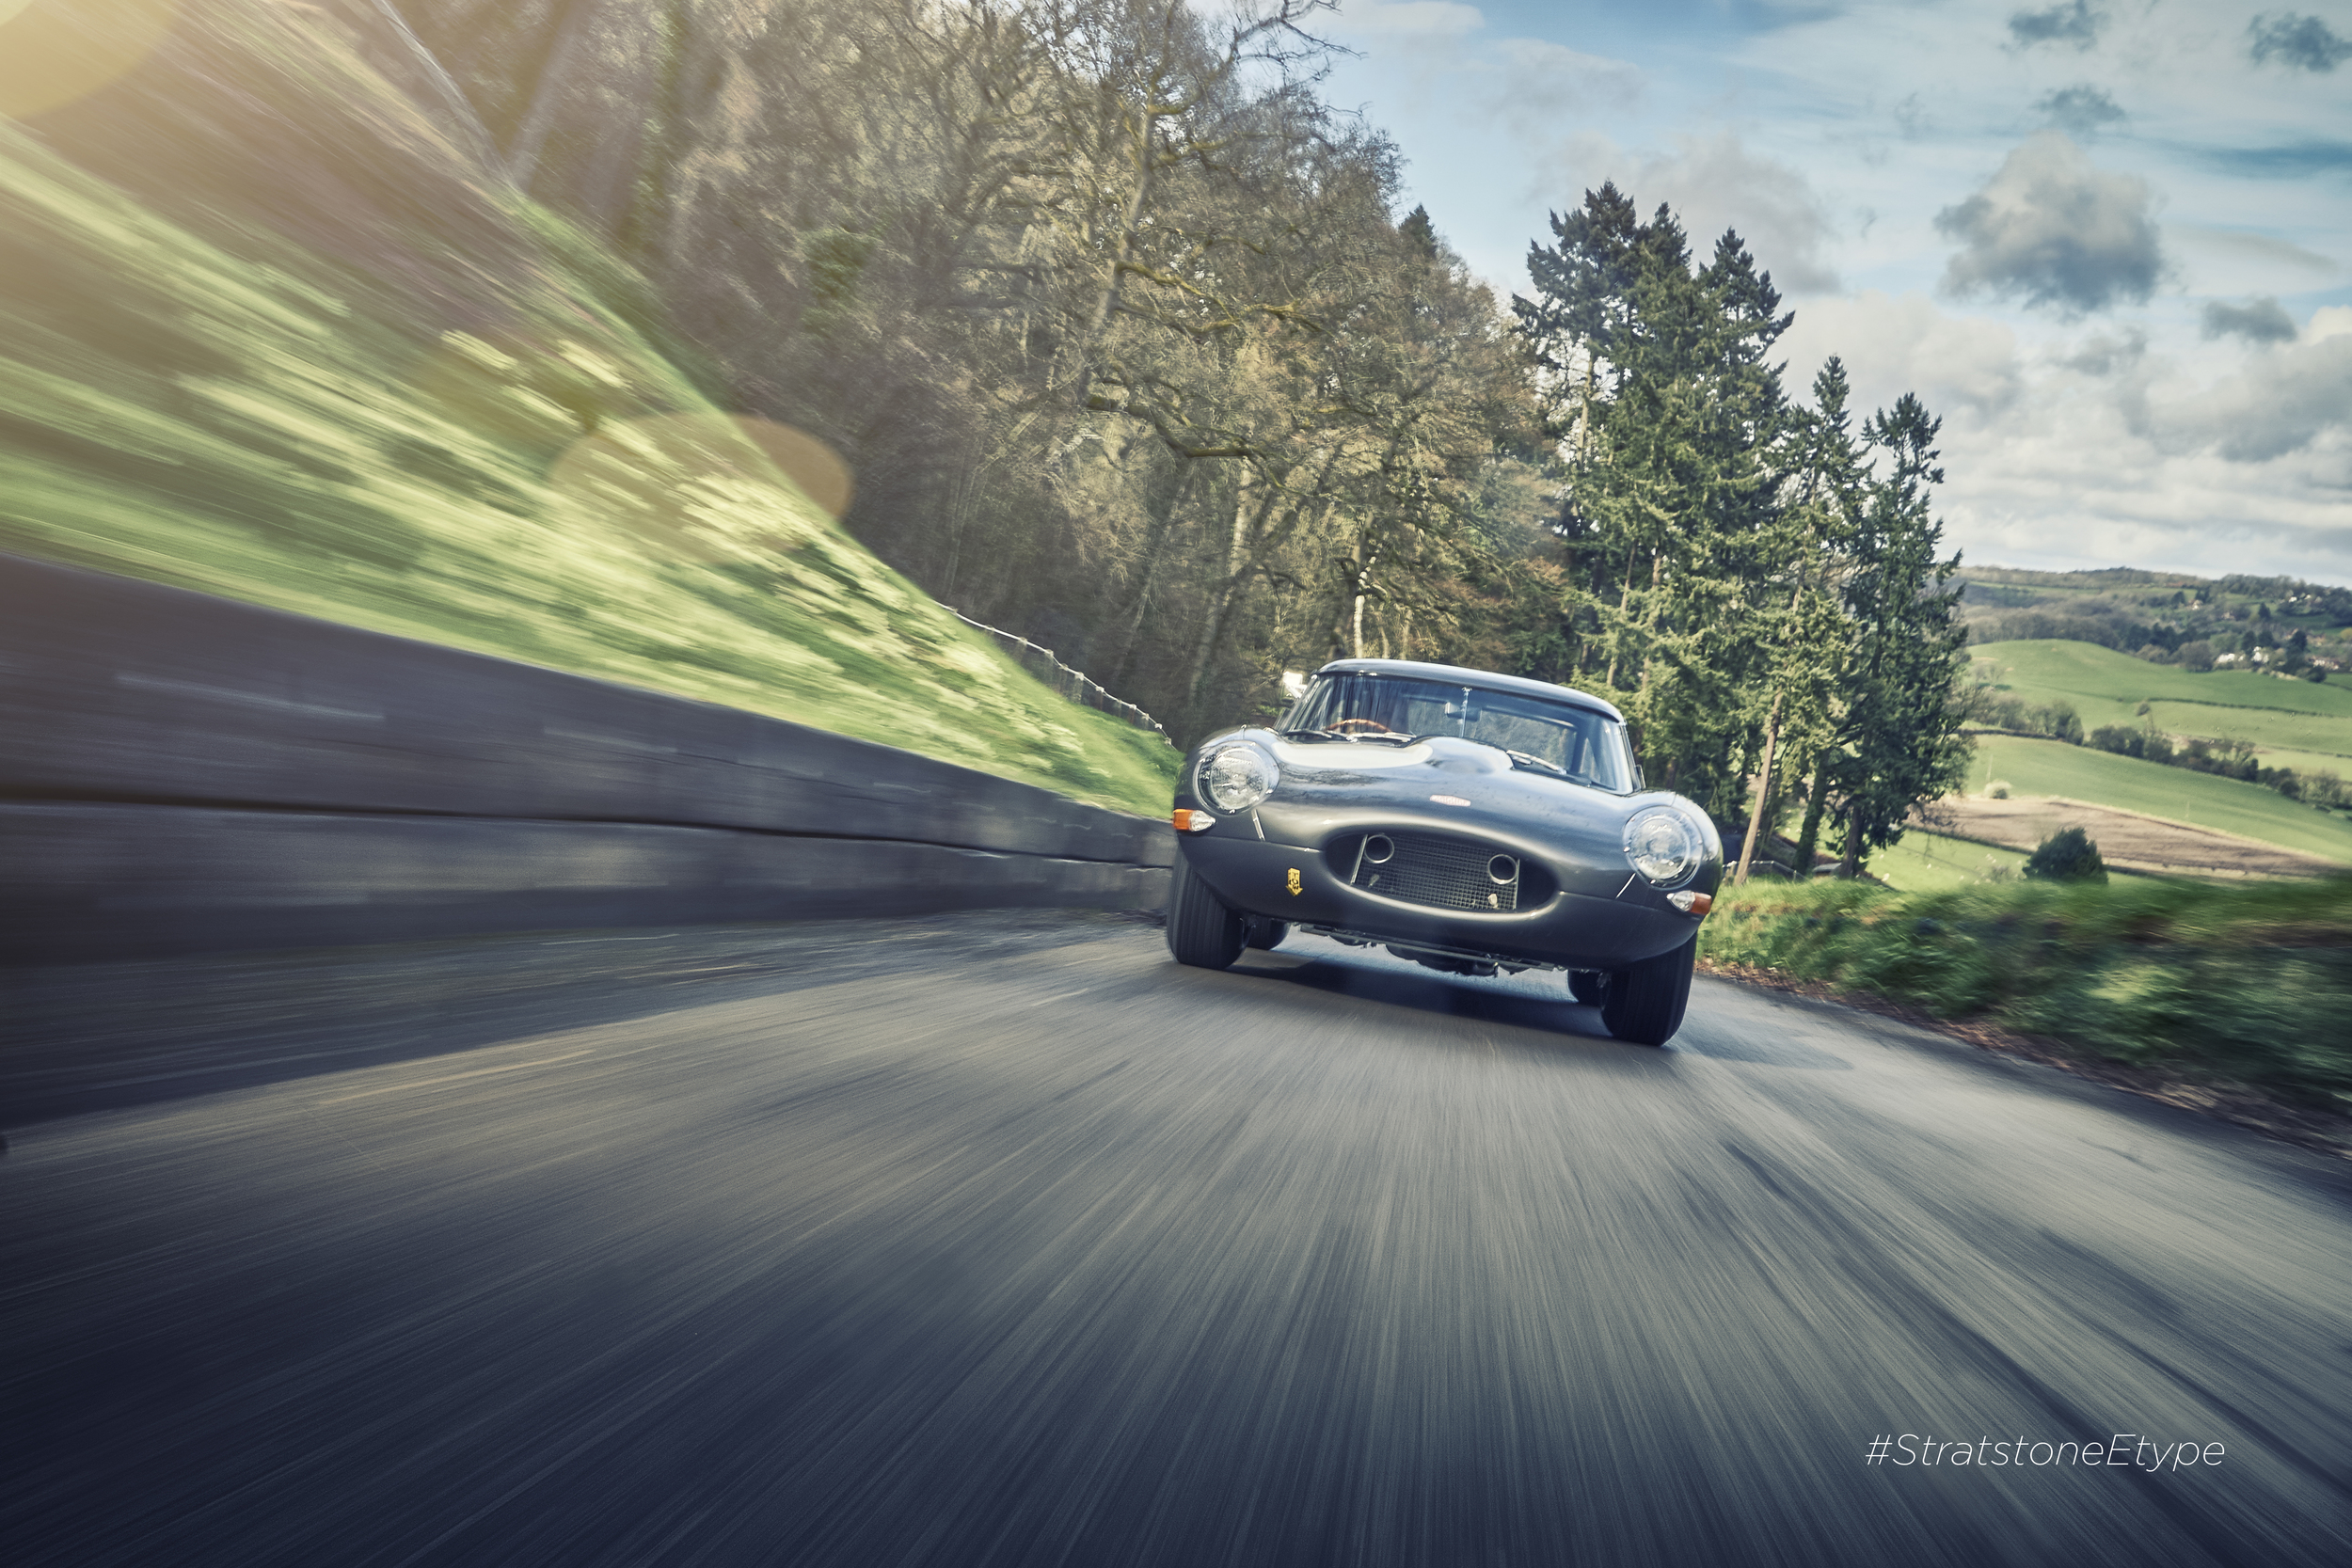 Lightweight E-Type being gunned up Shelsley Hil Climb on its first outing from the factory.